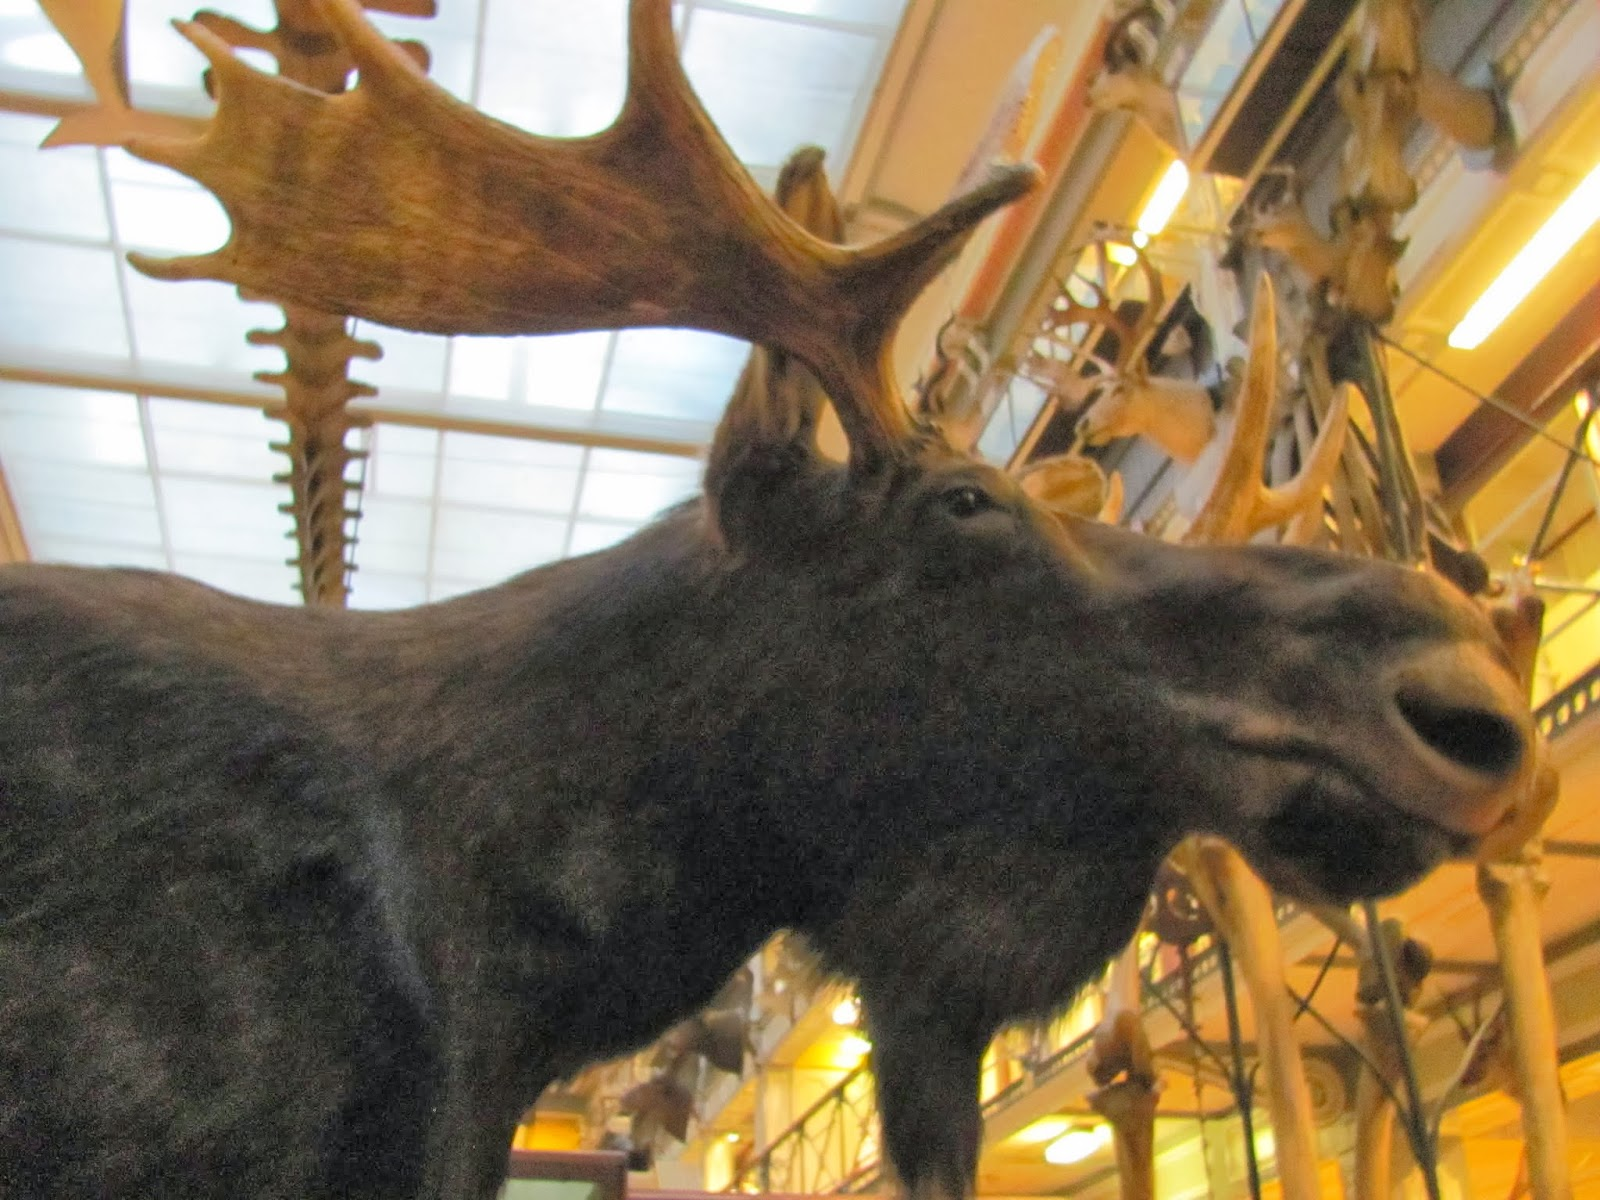 A moose on display at the National History Museum Dublin, Ireland